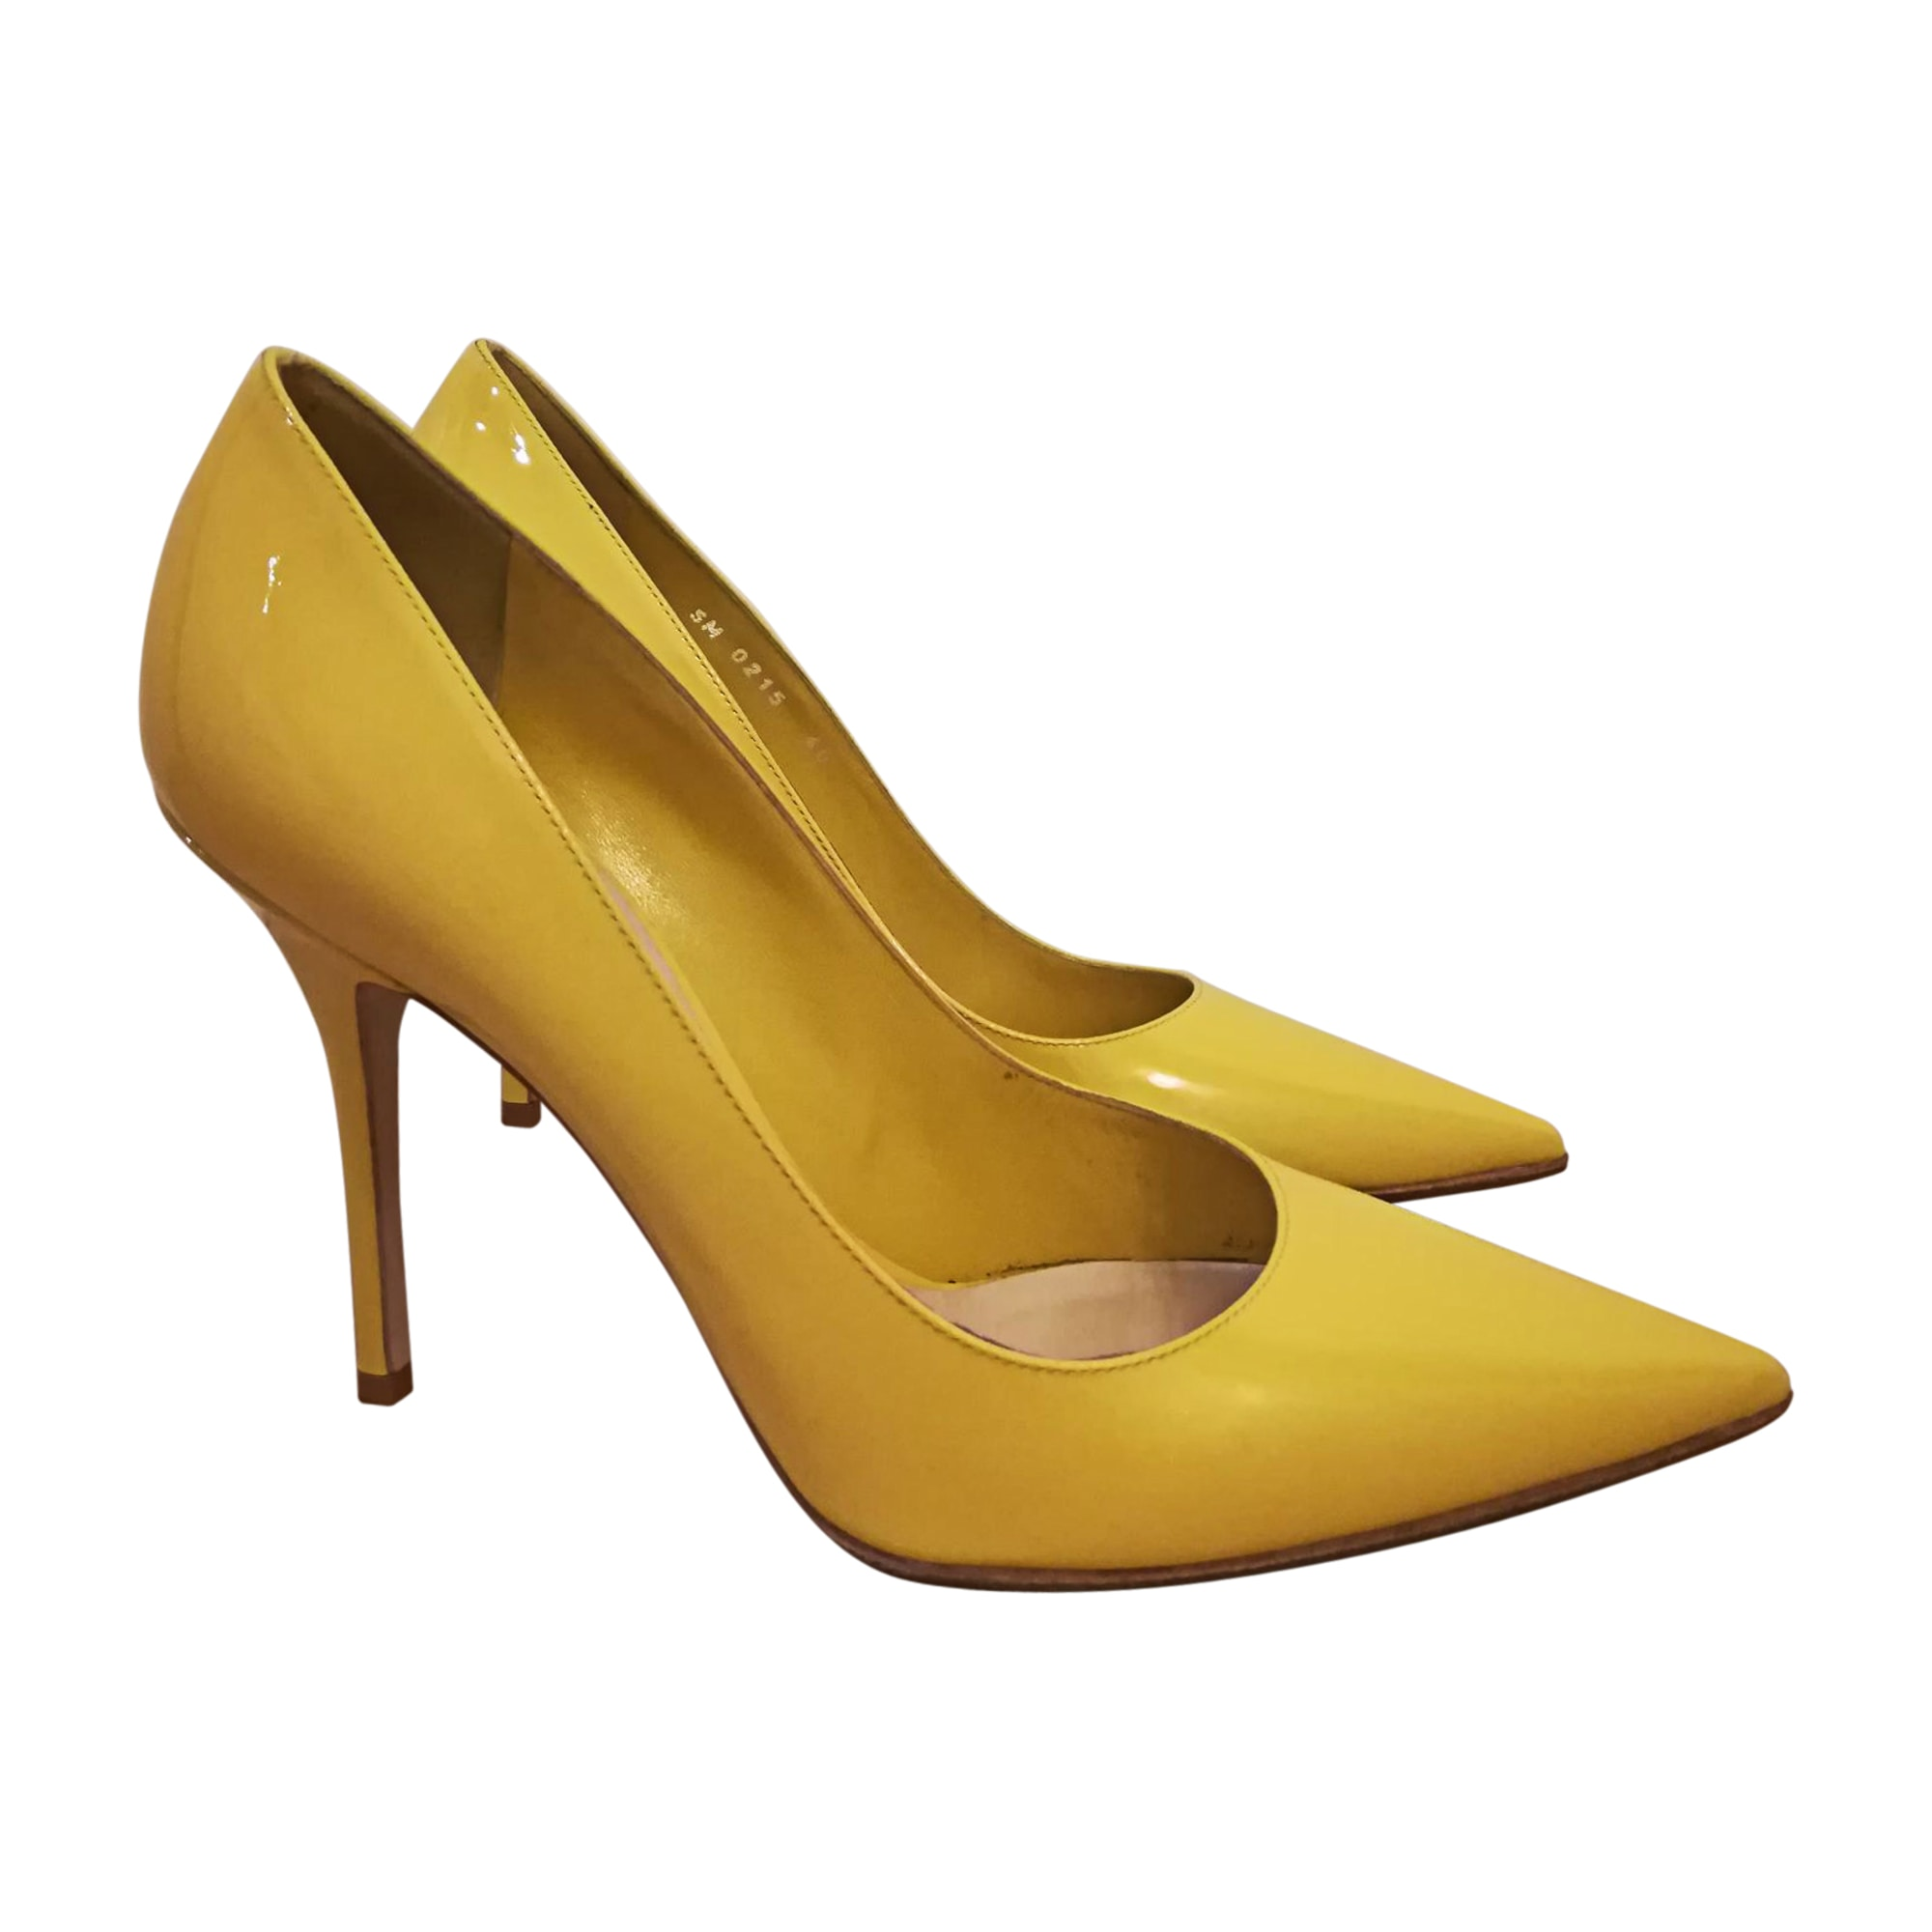 8527a01b6cc 2018 Spring Summer Elegant Genuine Leather Ladise Nude Yellow Pumps Pointed  Toe Thin High Heel Women Normal Size 9 Dress Shoes-in Women s Pumps from  Shoes …